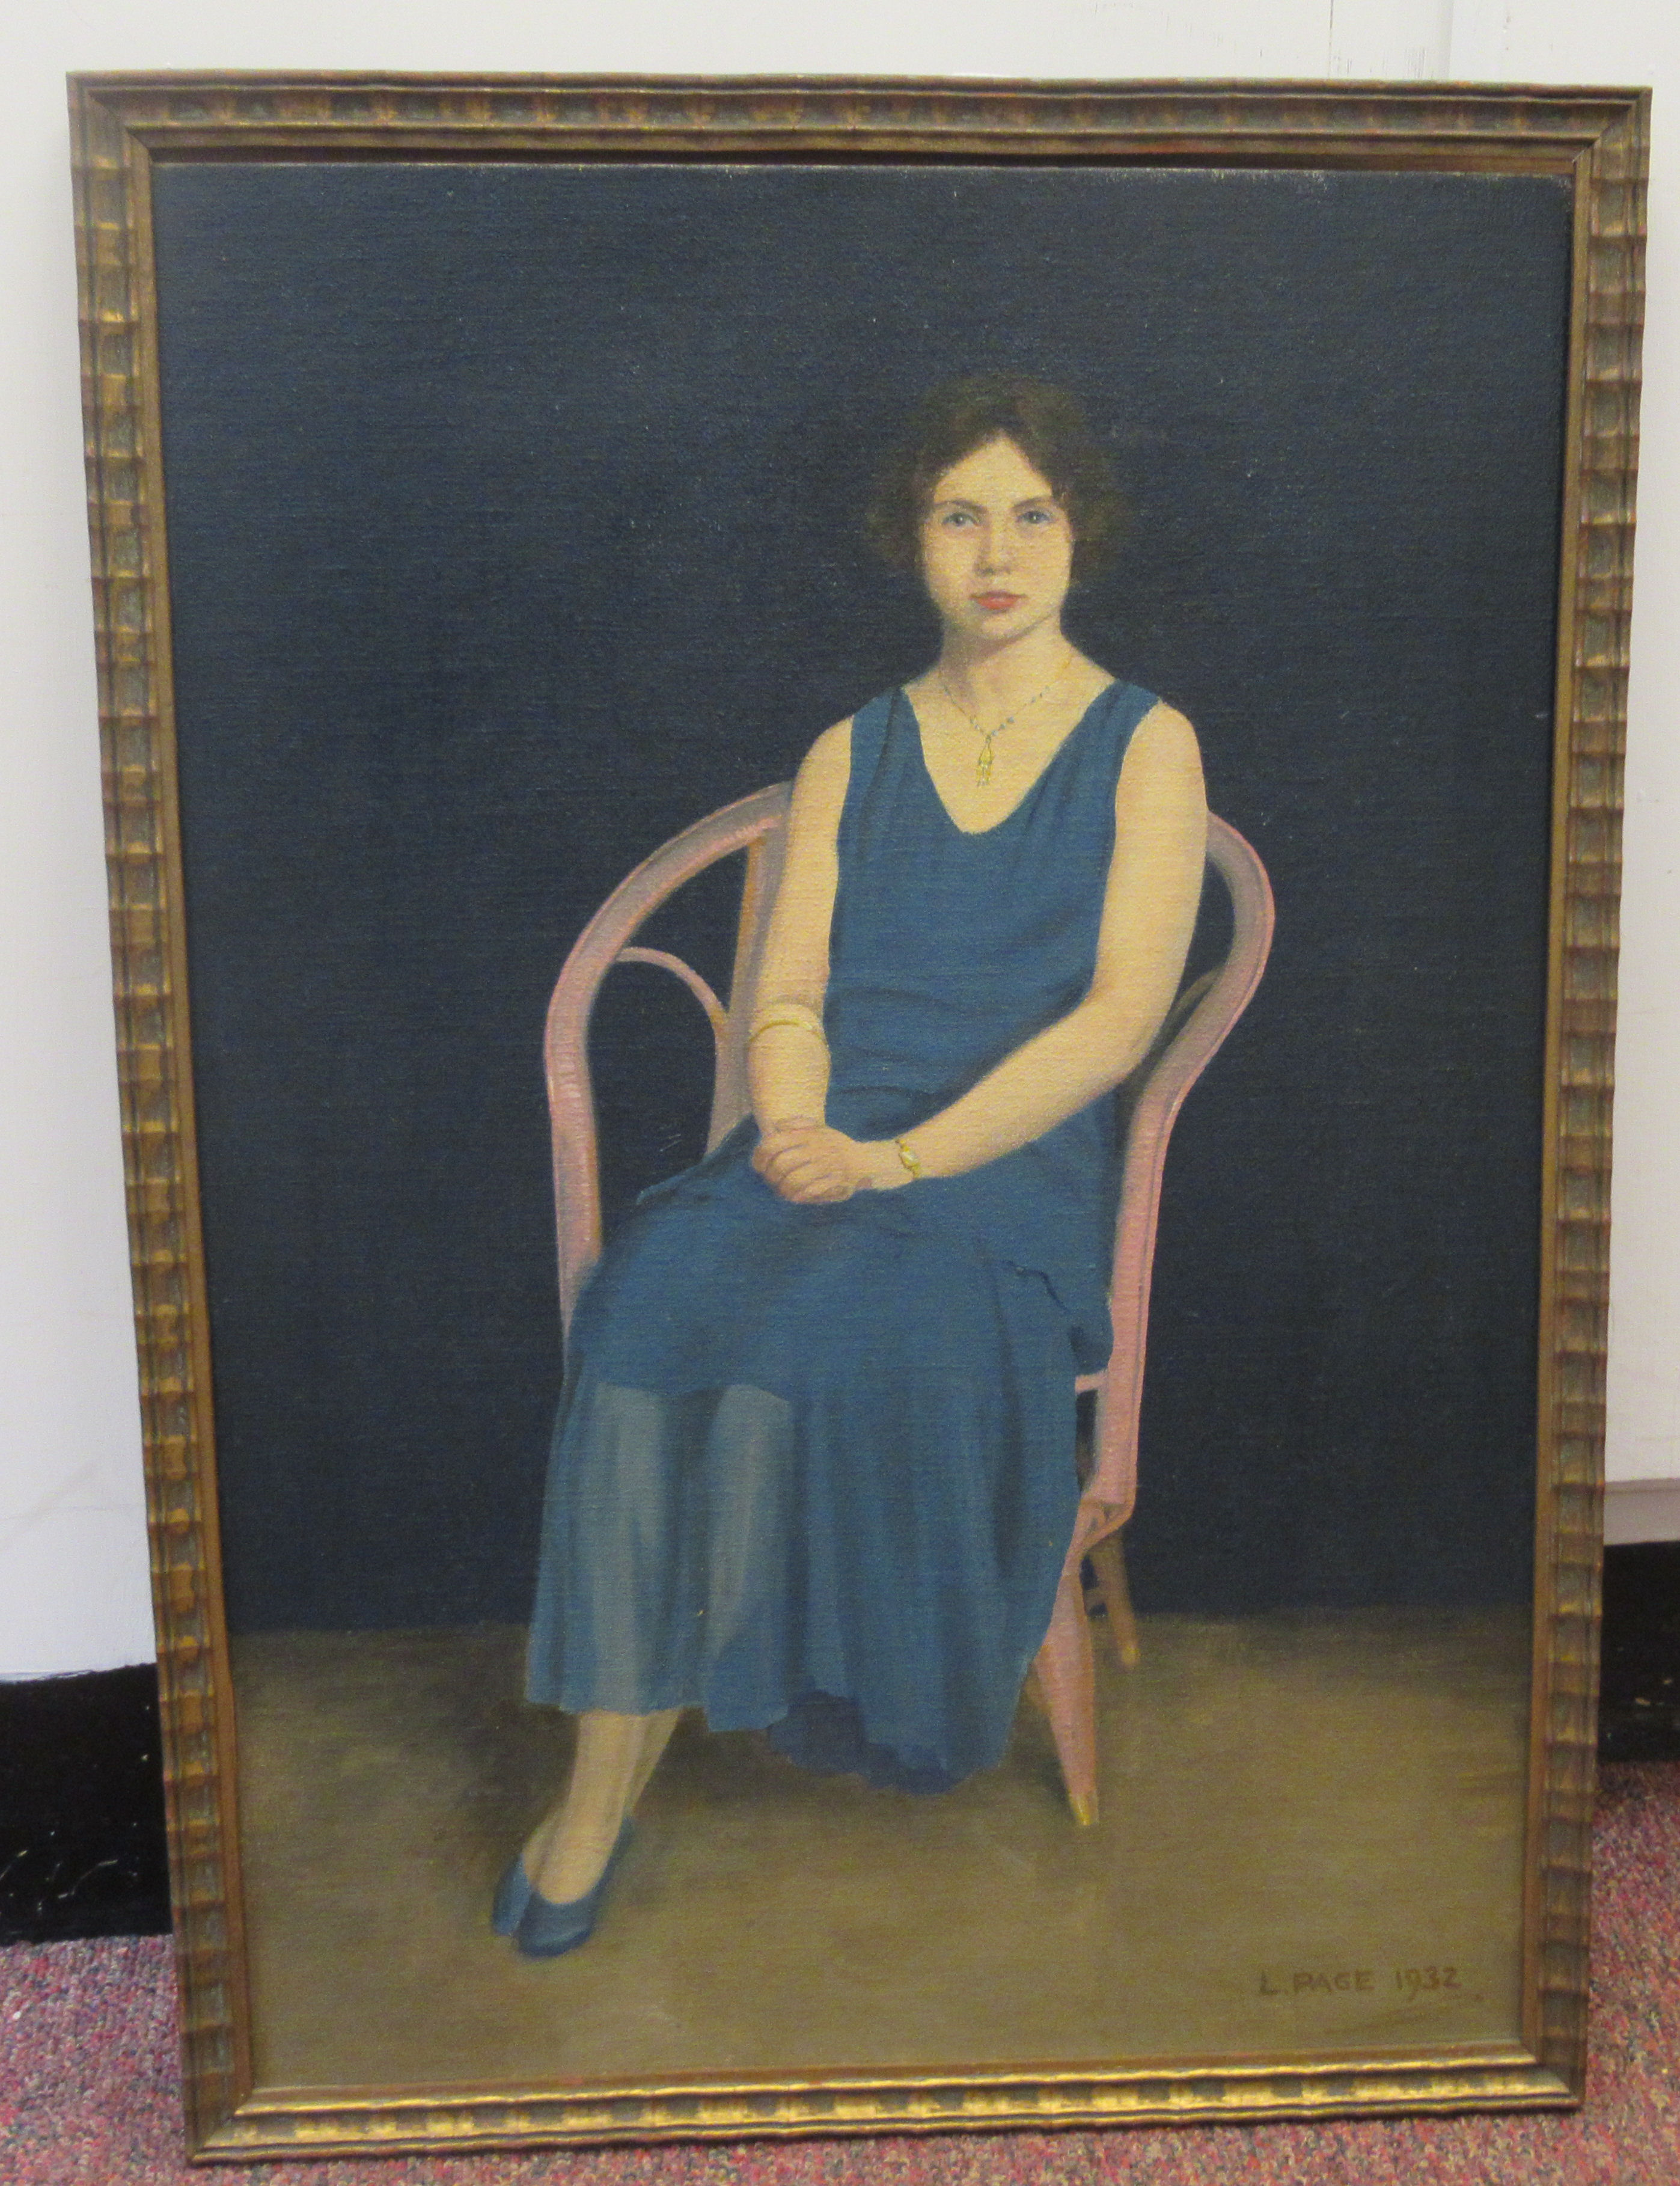 L Page - a portrait study, a young woman wearing a blue dress, seated on a veranda chairoil on